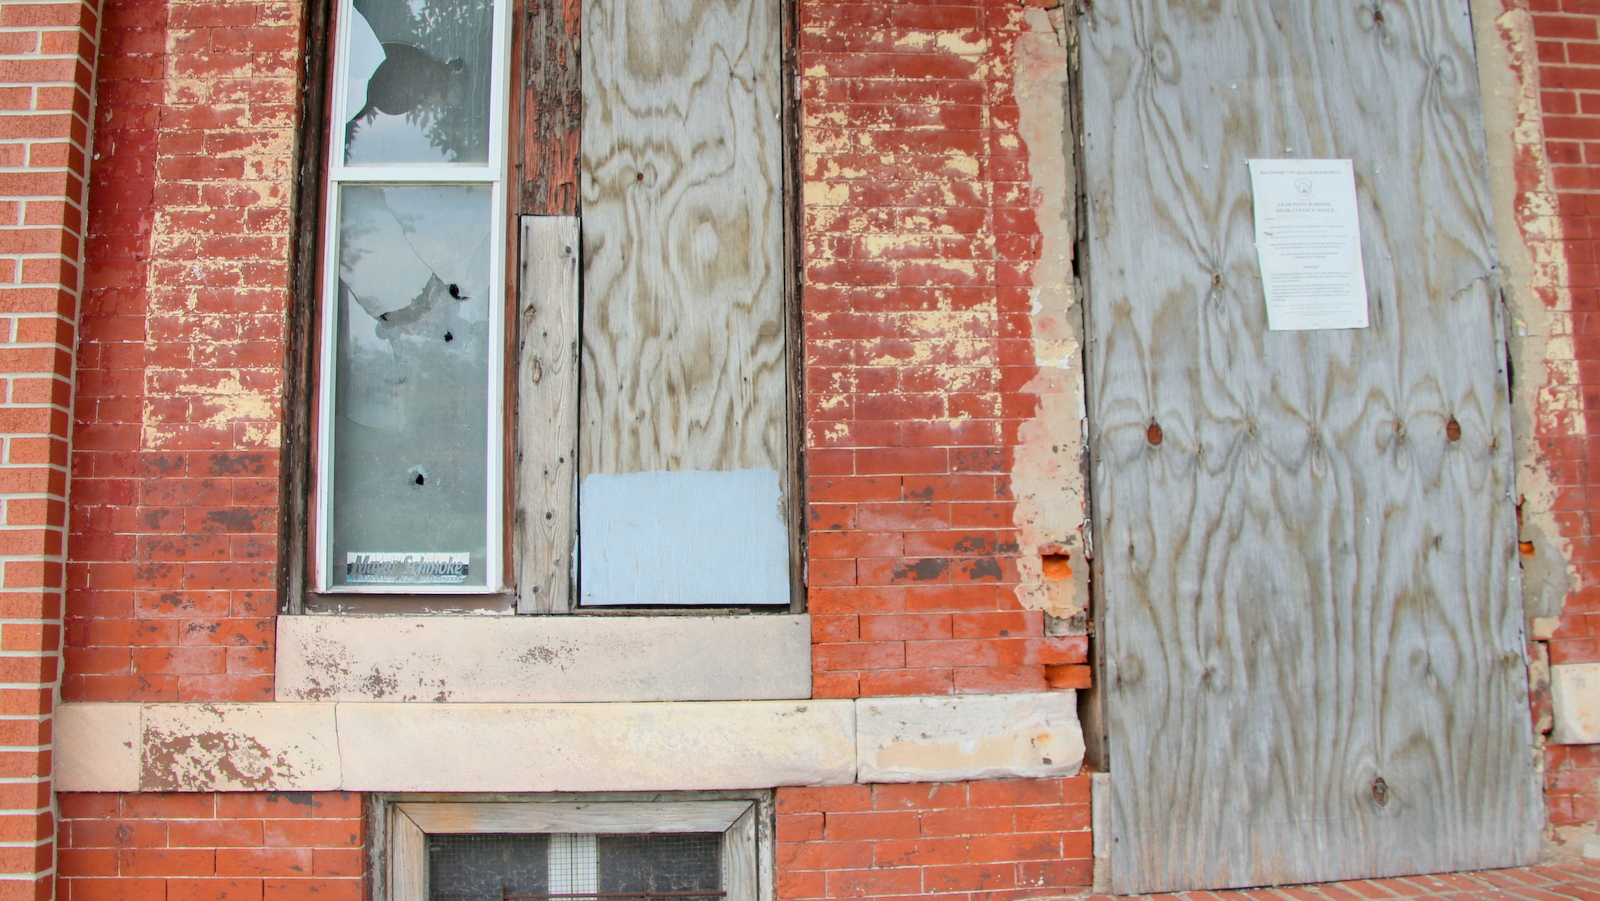 Near where Det. Suiter was shot, some houses are occupied but many more are vacant and boarded-up, like this one on West Franklin Street. (Fern Shen)